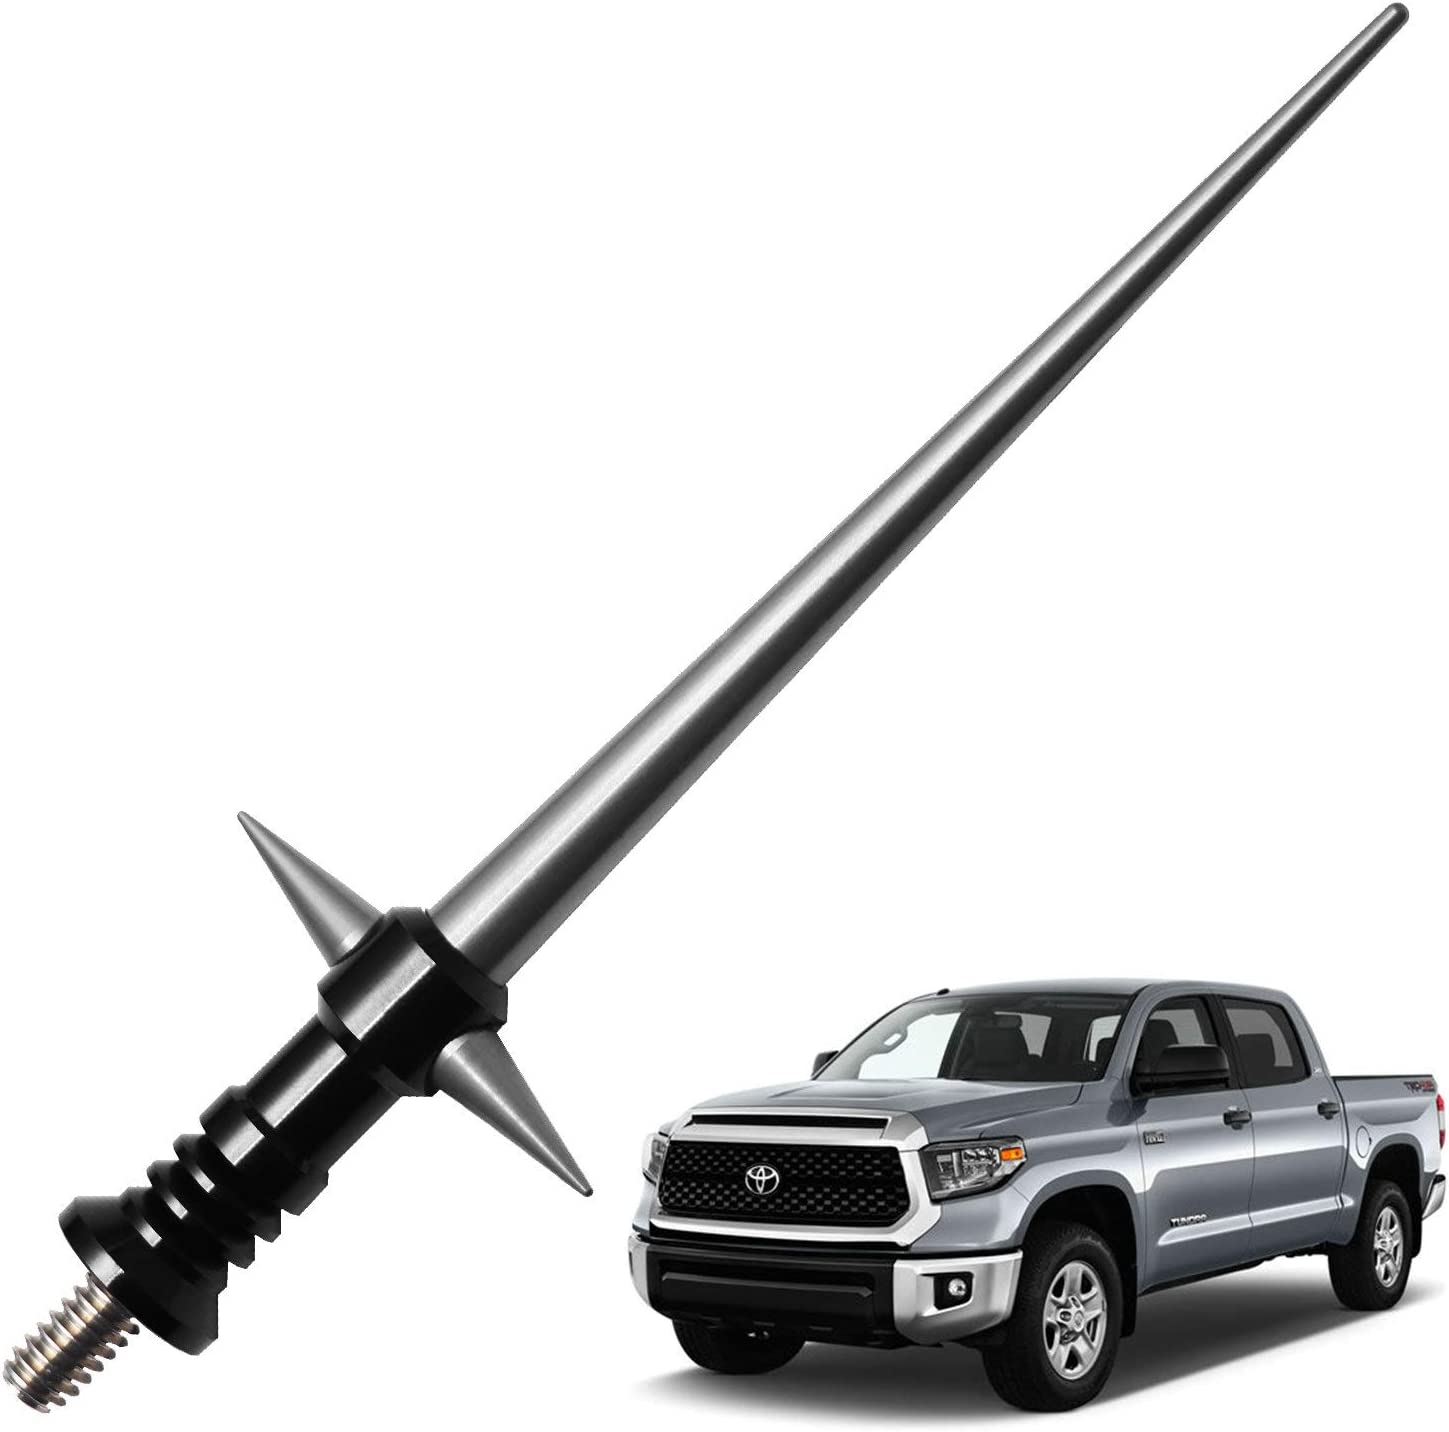 Black JAPower Replacement Antenna Compatible with Toyota Tacoma 1995-2015 5.25 inches